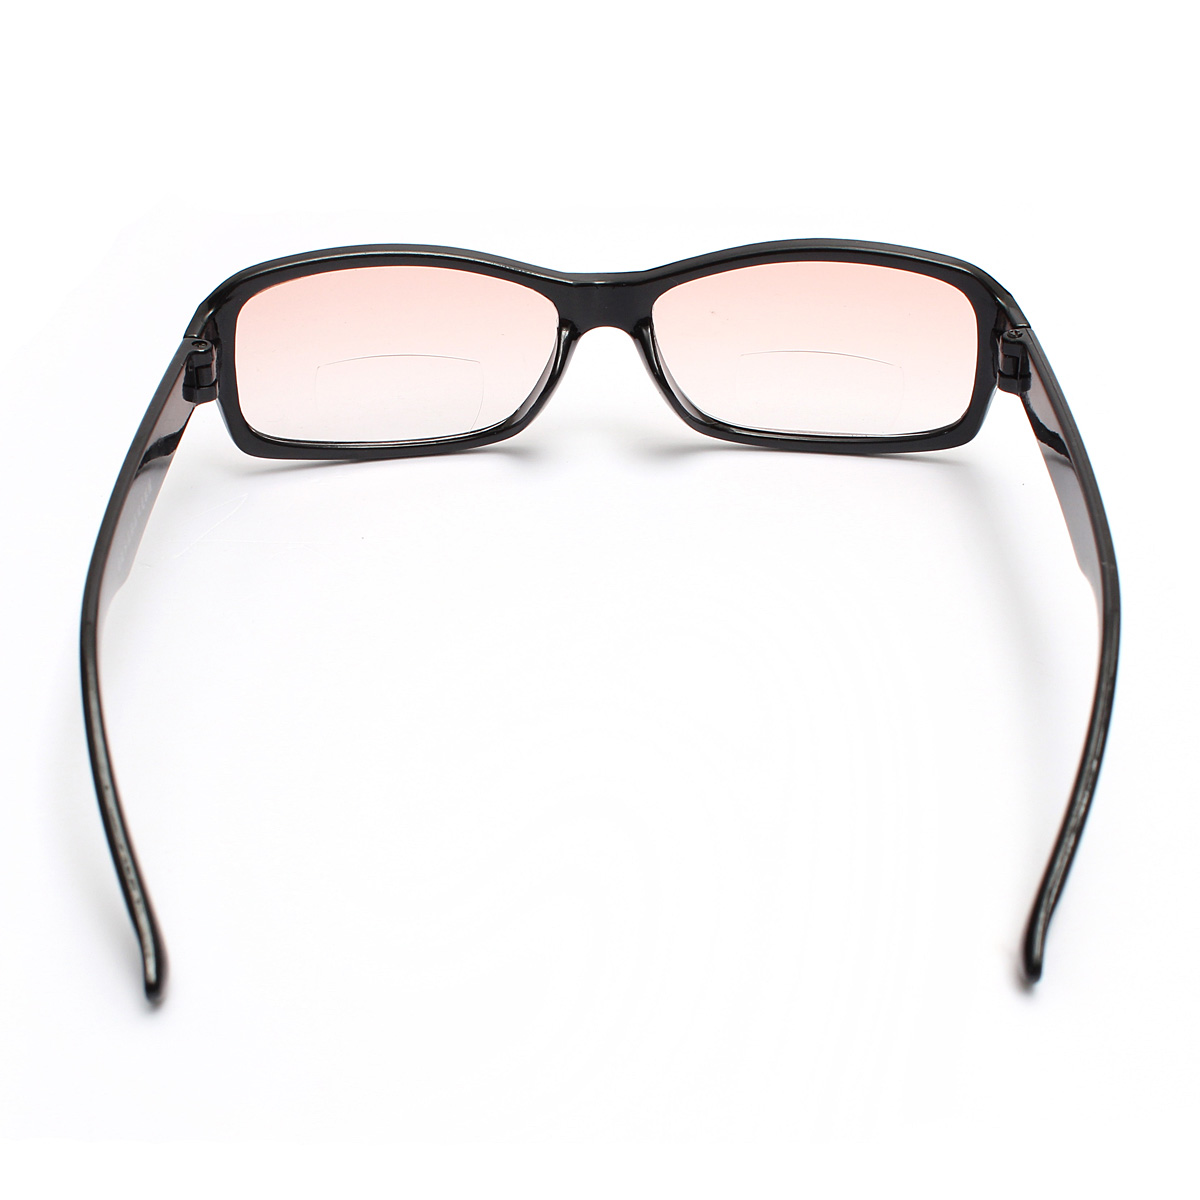 28f59d32703 Best Place To Buy Reading Glasses Online